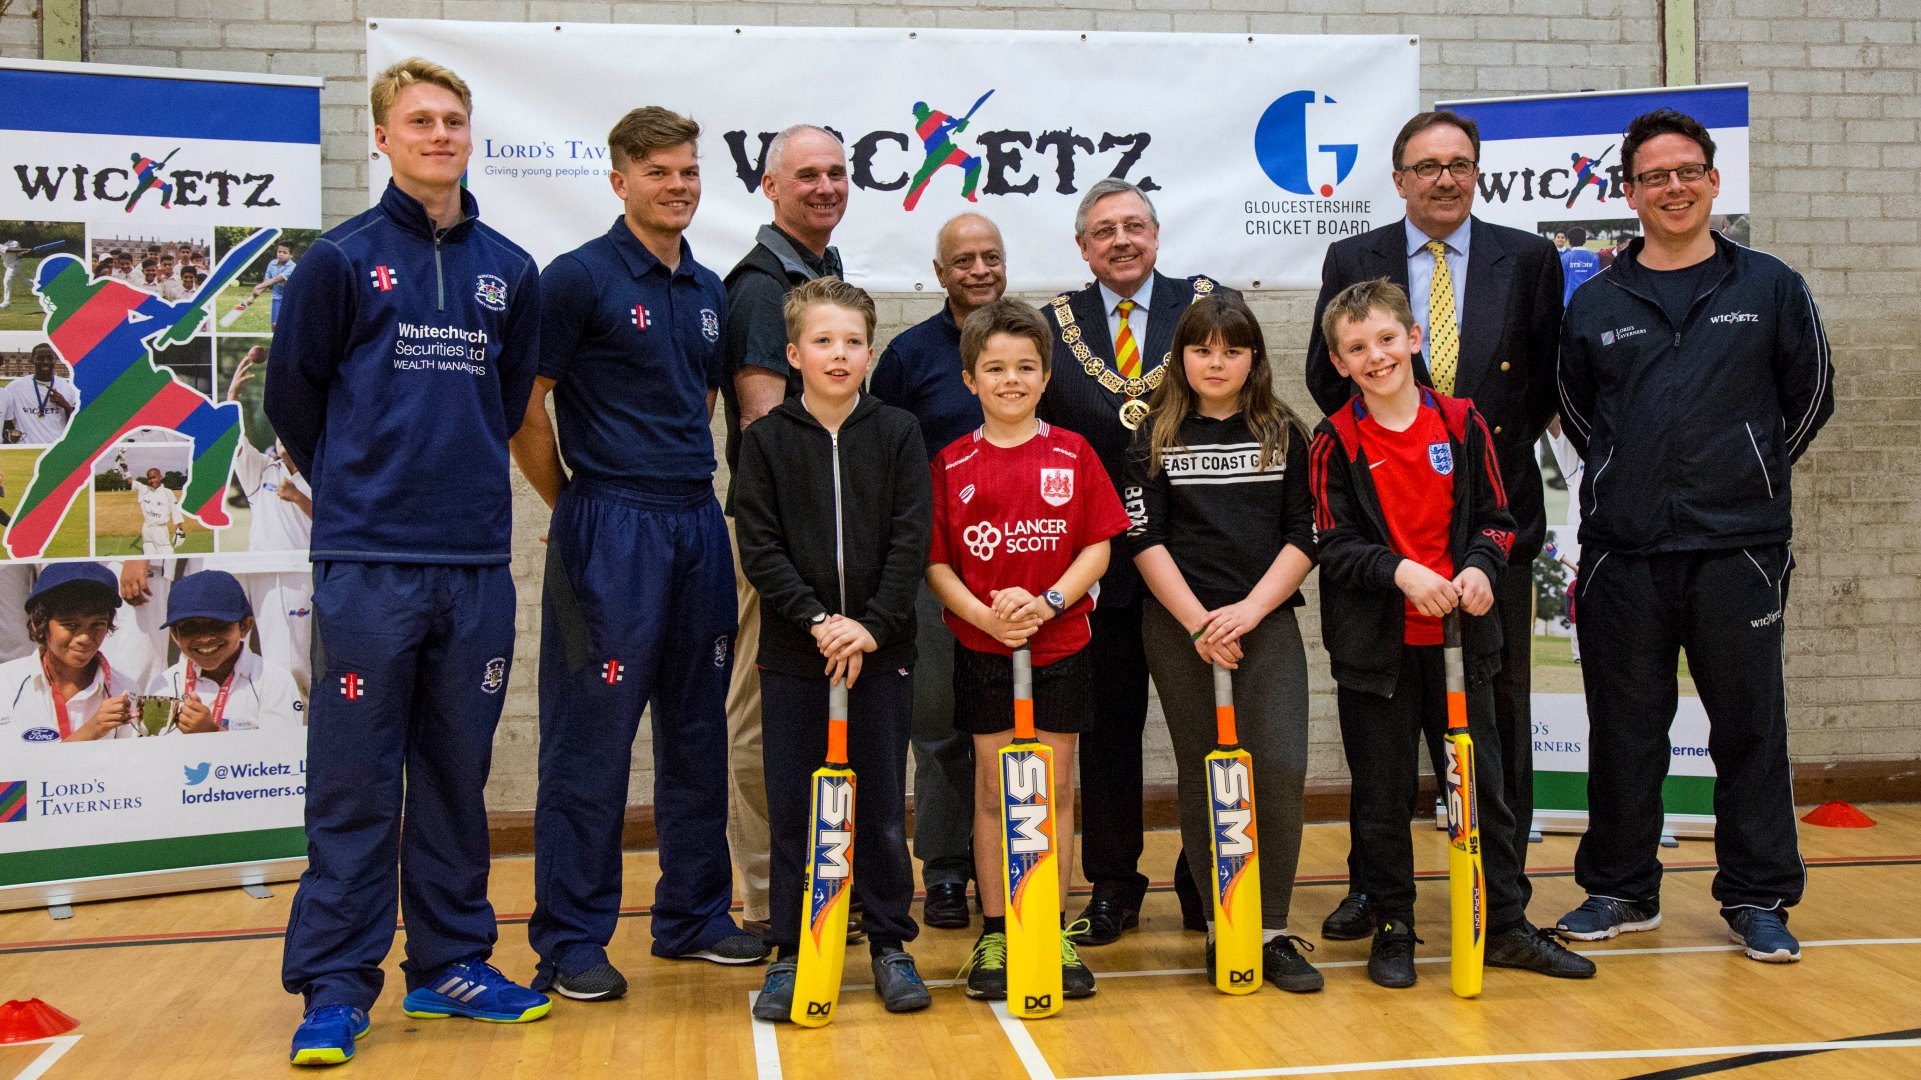 Freemasons grant helps bring cricket to young people in Bristol